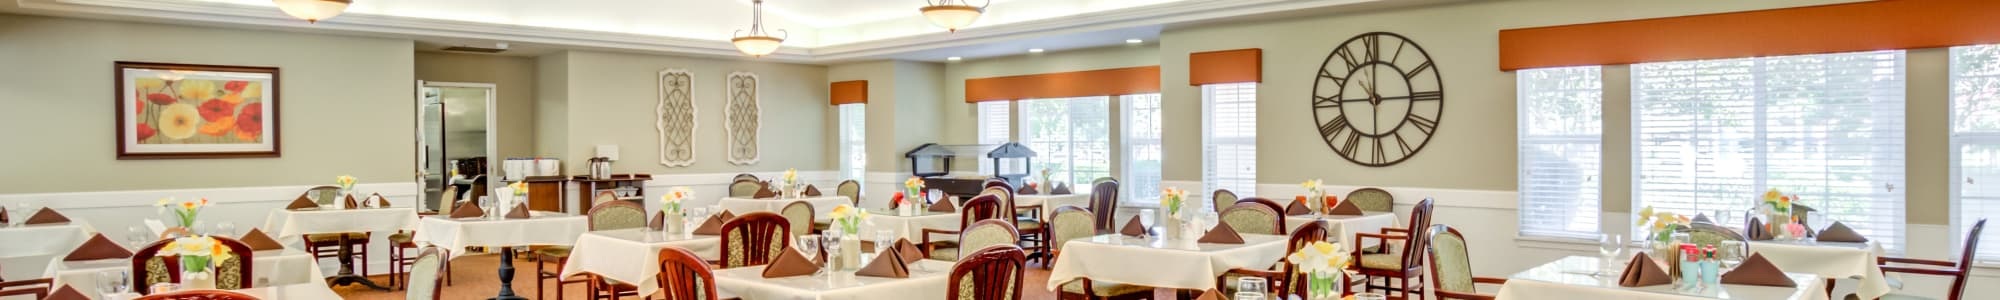 Join Us for Lunch at Westmont Village in Riverside, California